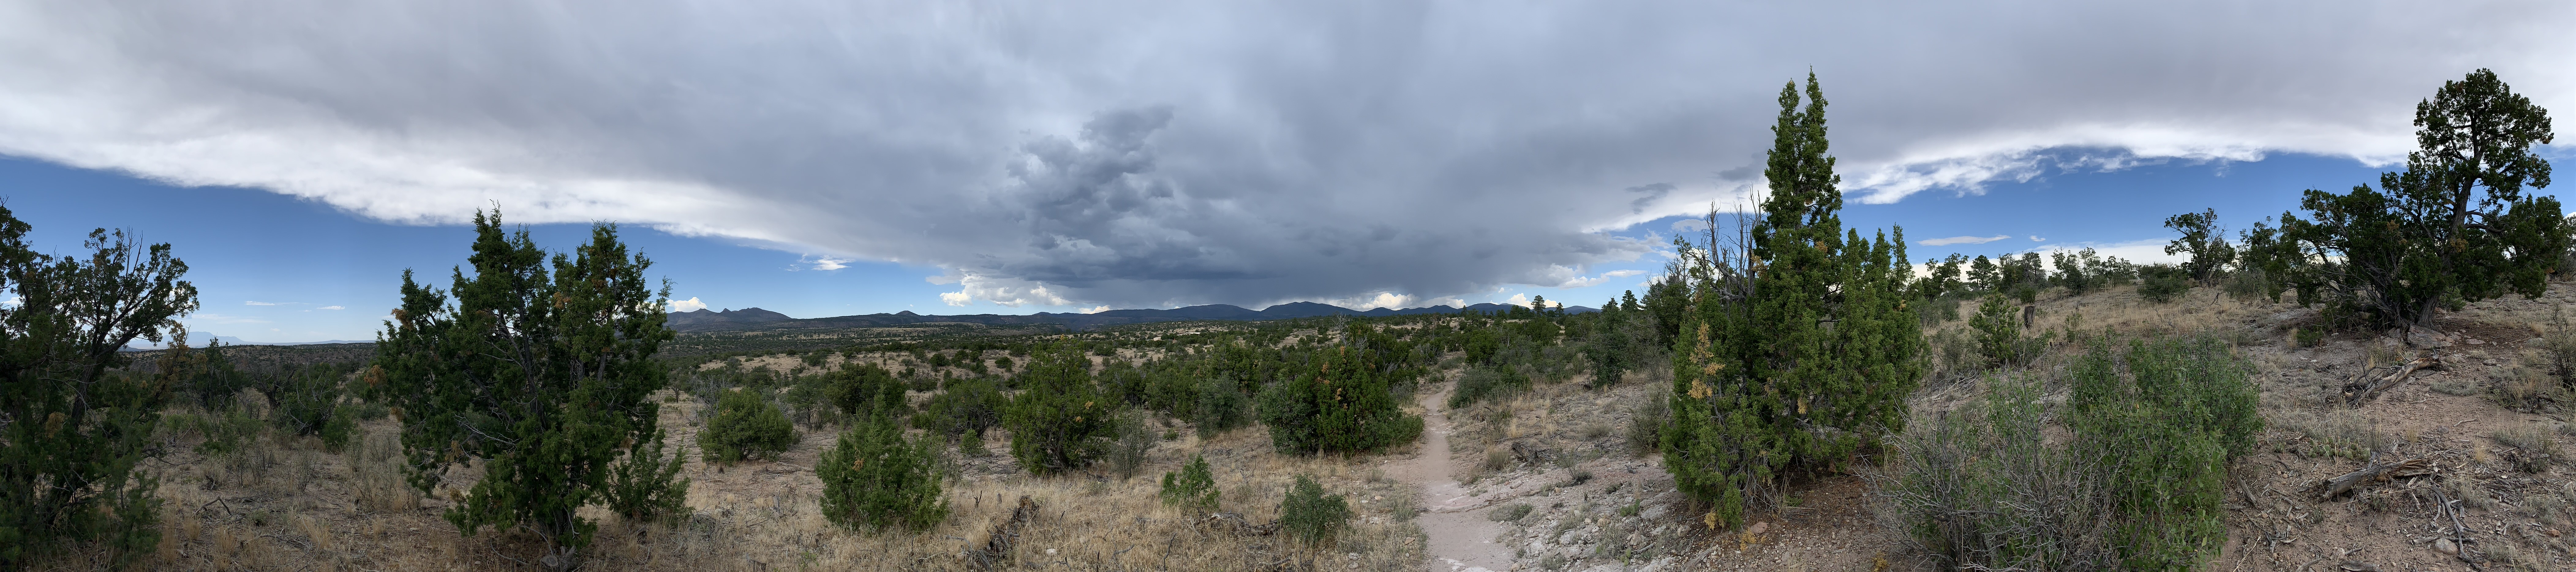 Frey Trail II, Bandelier National Monument, New Mexico